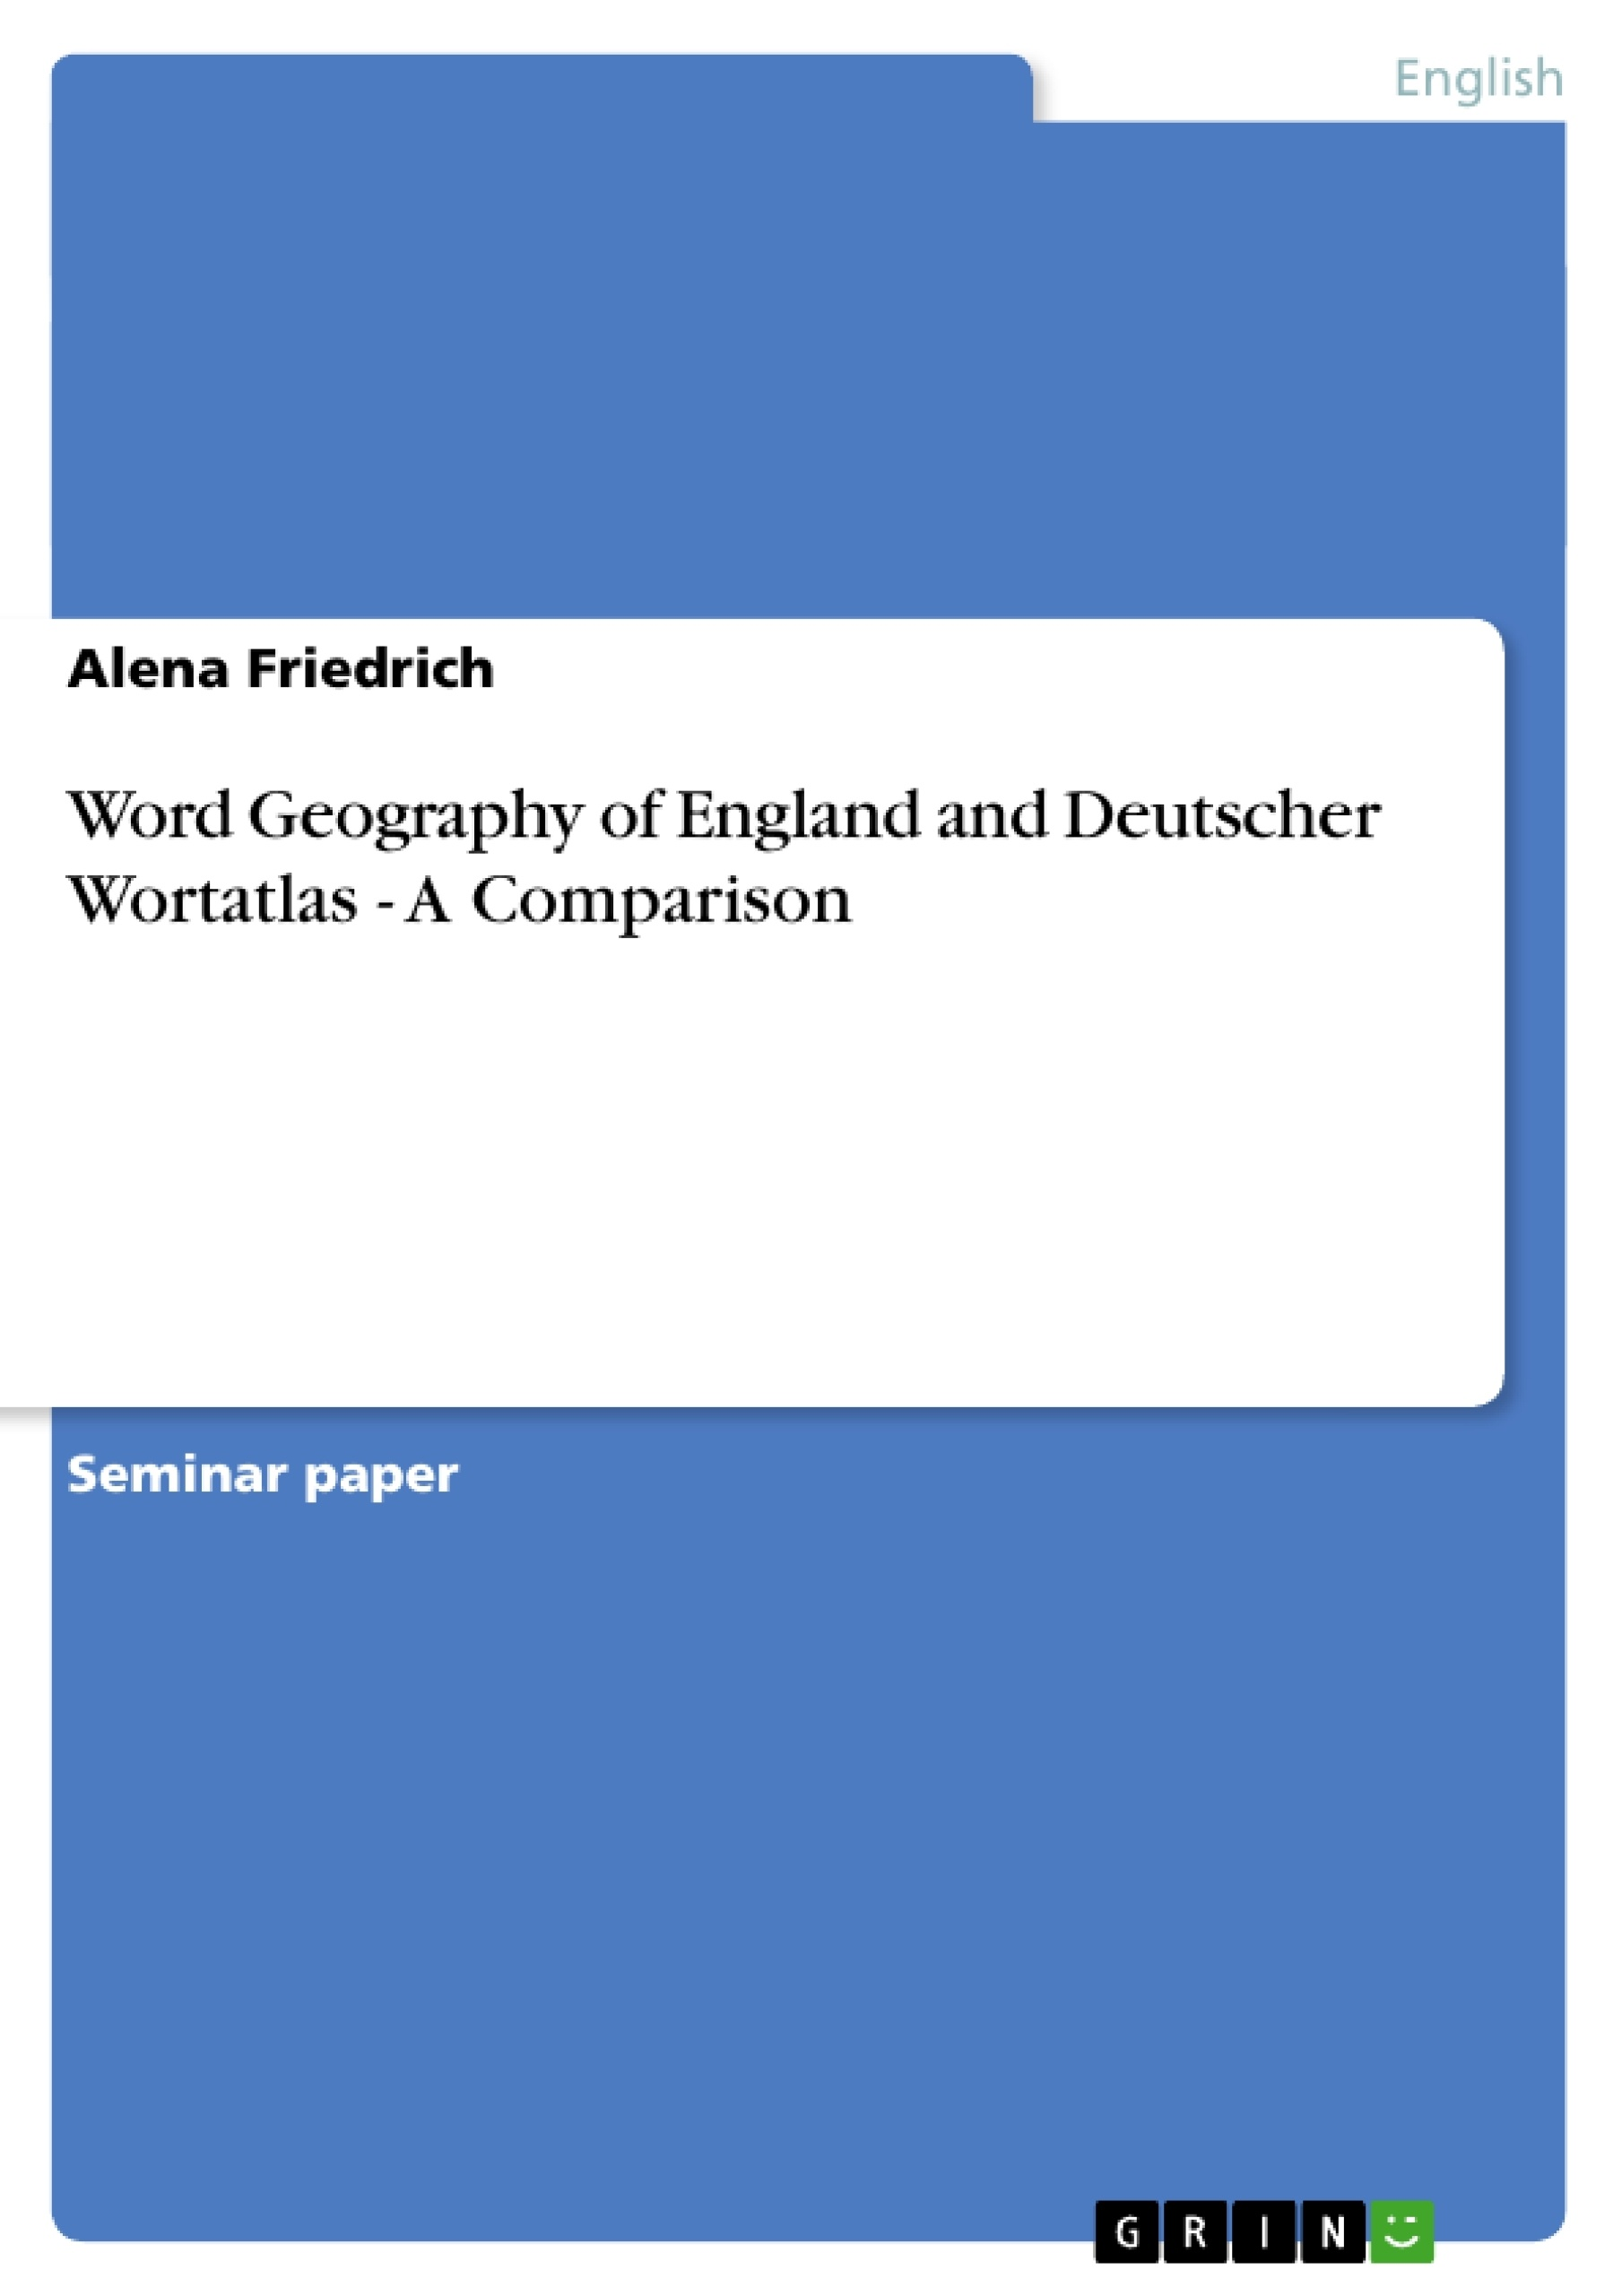 Title: Word Geography of England and Deutscher Wortatlas - A Comparison